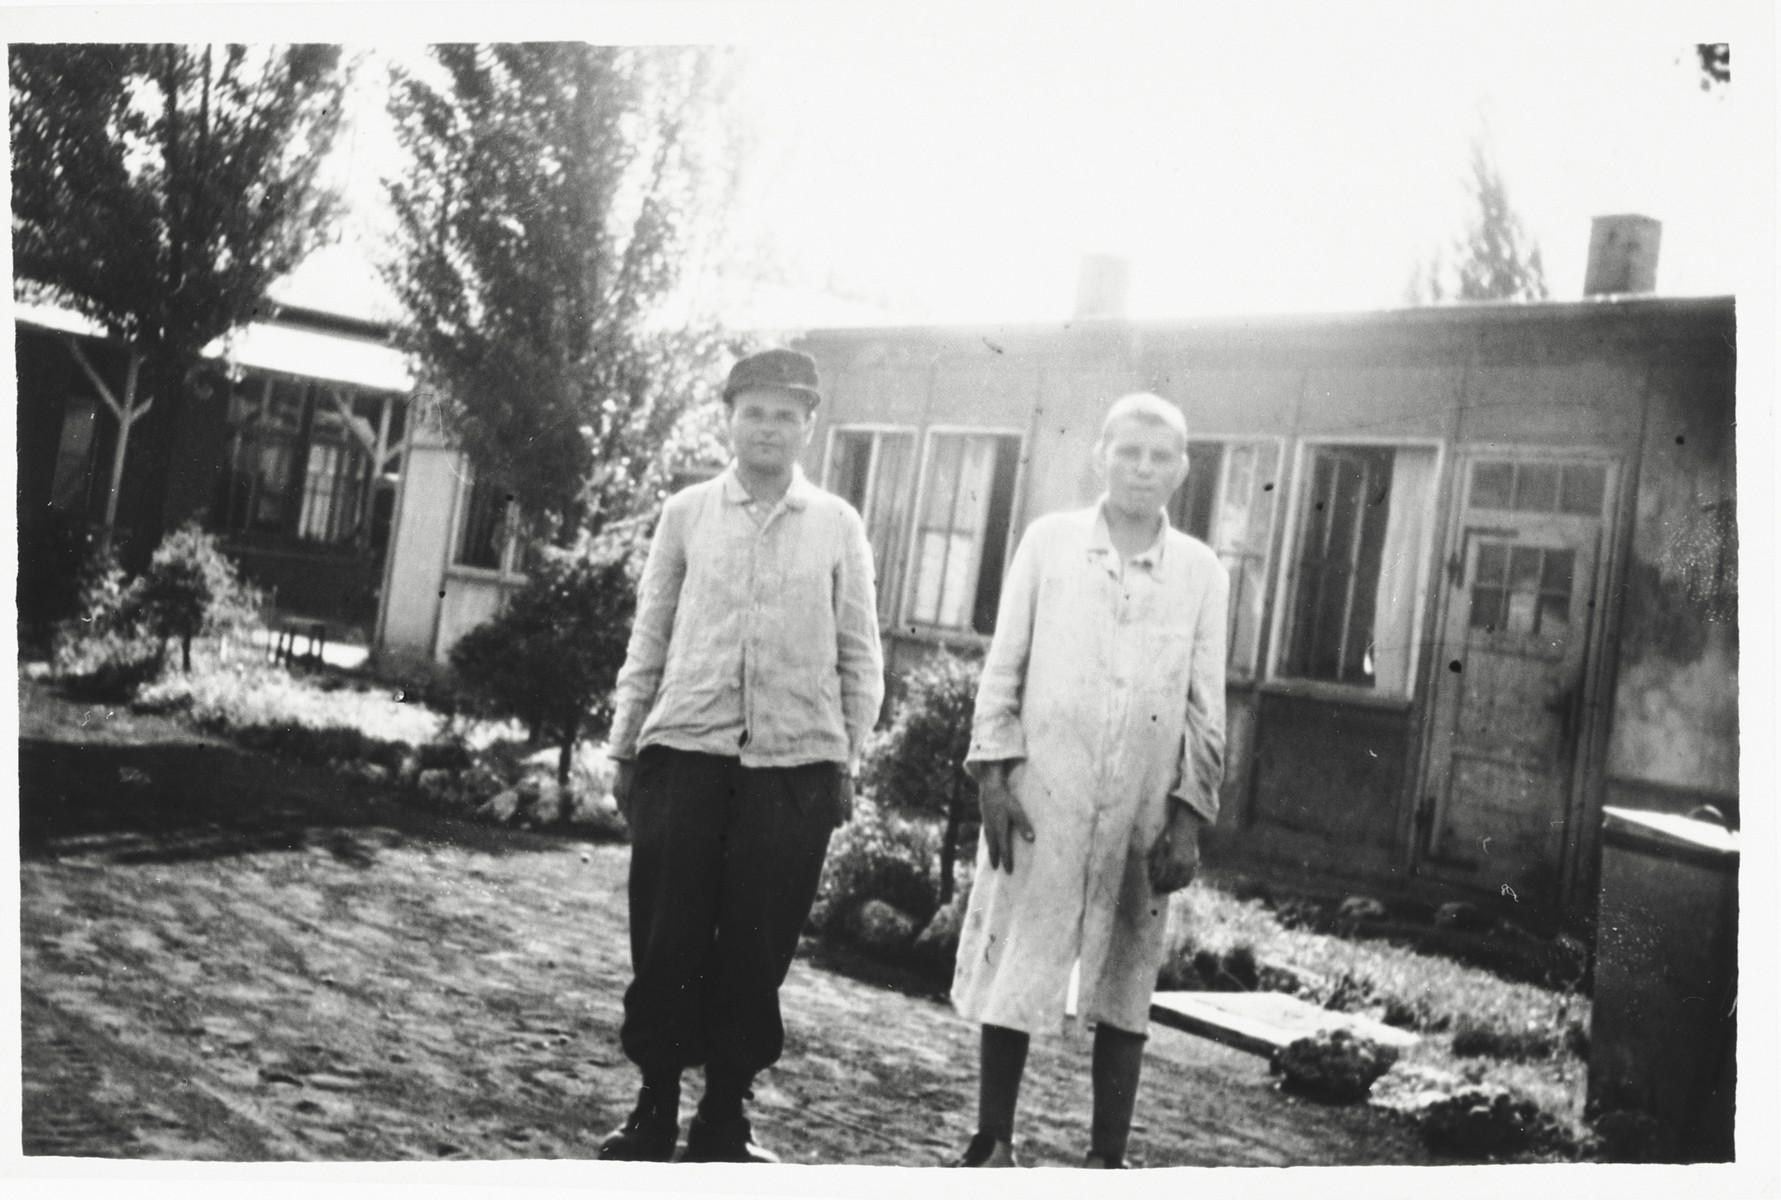 Two young survivors of Dachau pose outside [possibly an administrative] building in the camp complex.